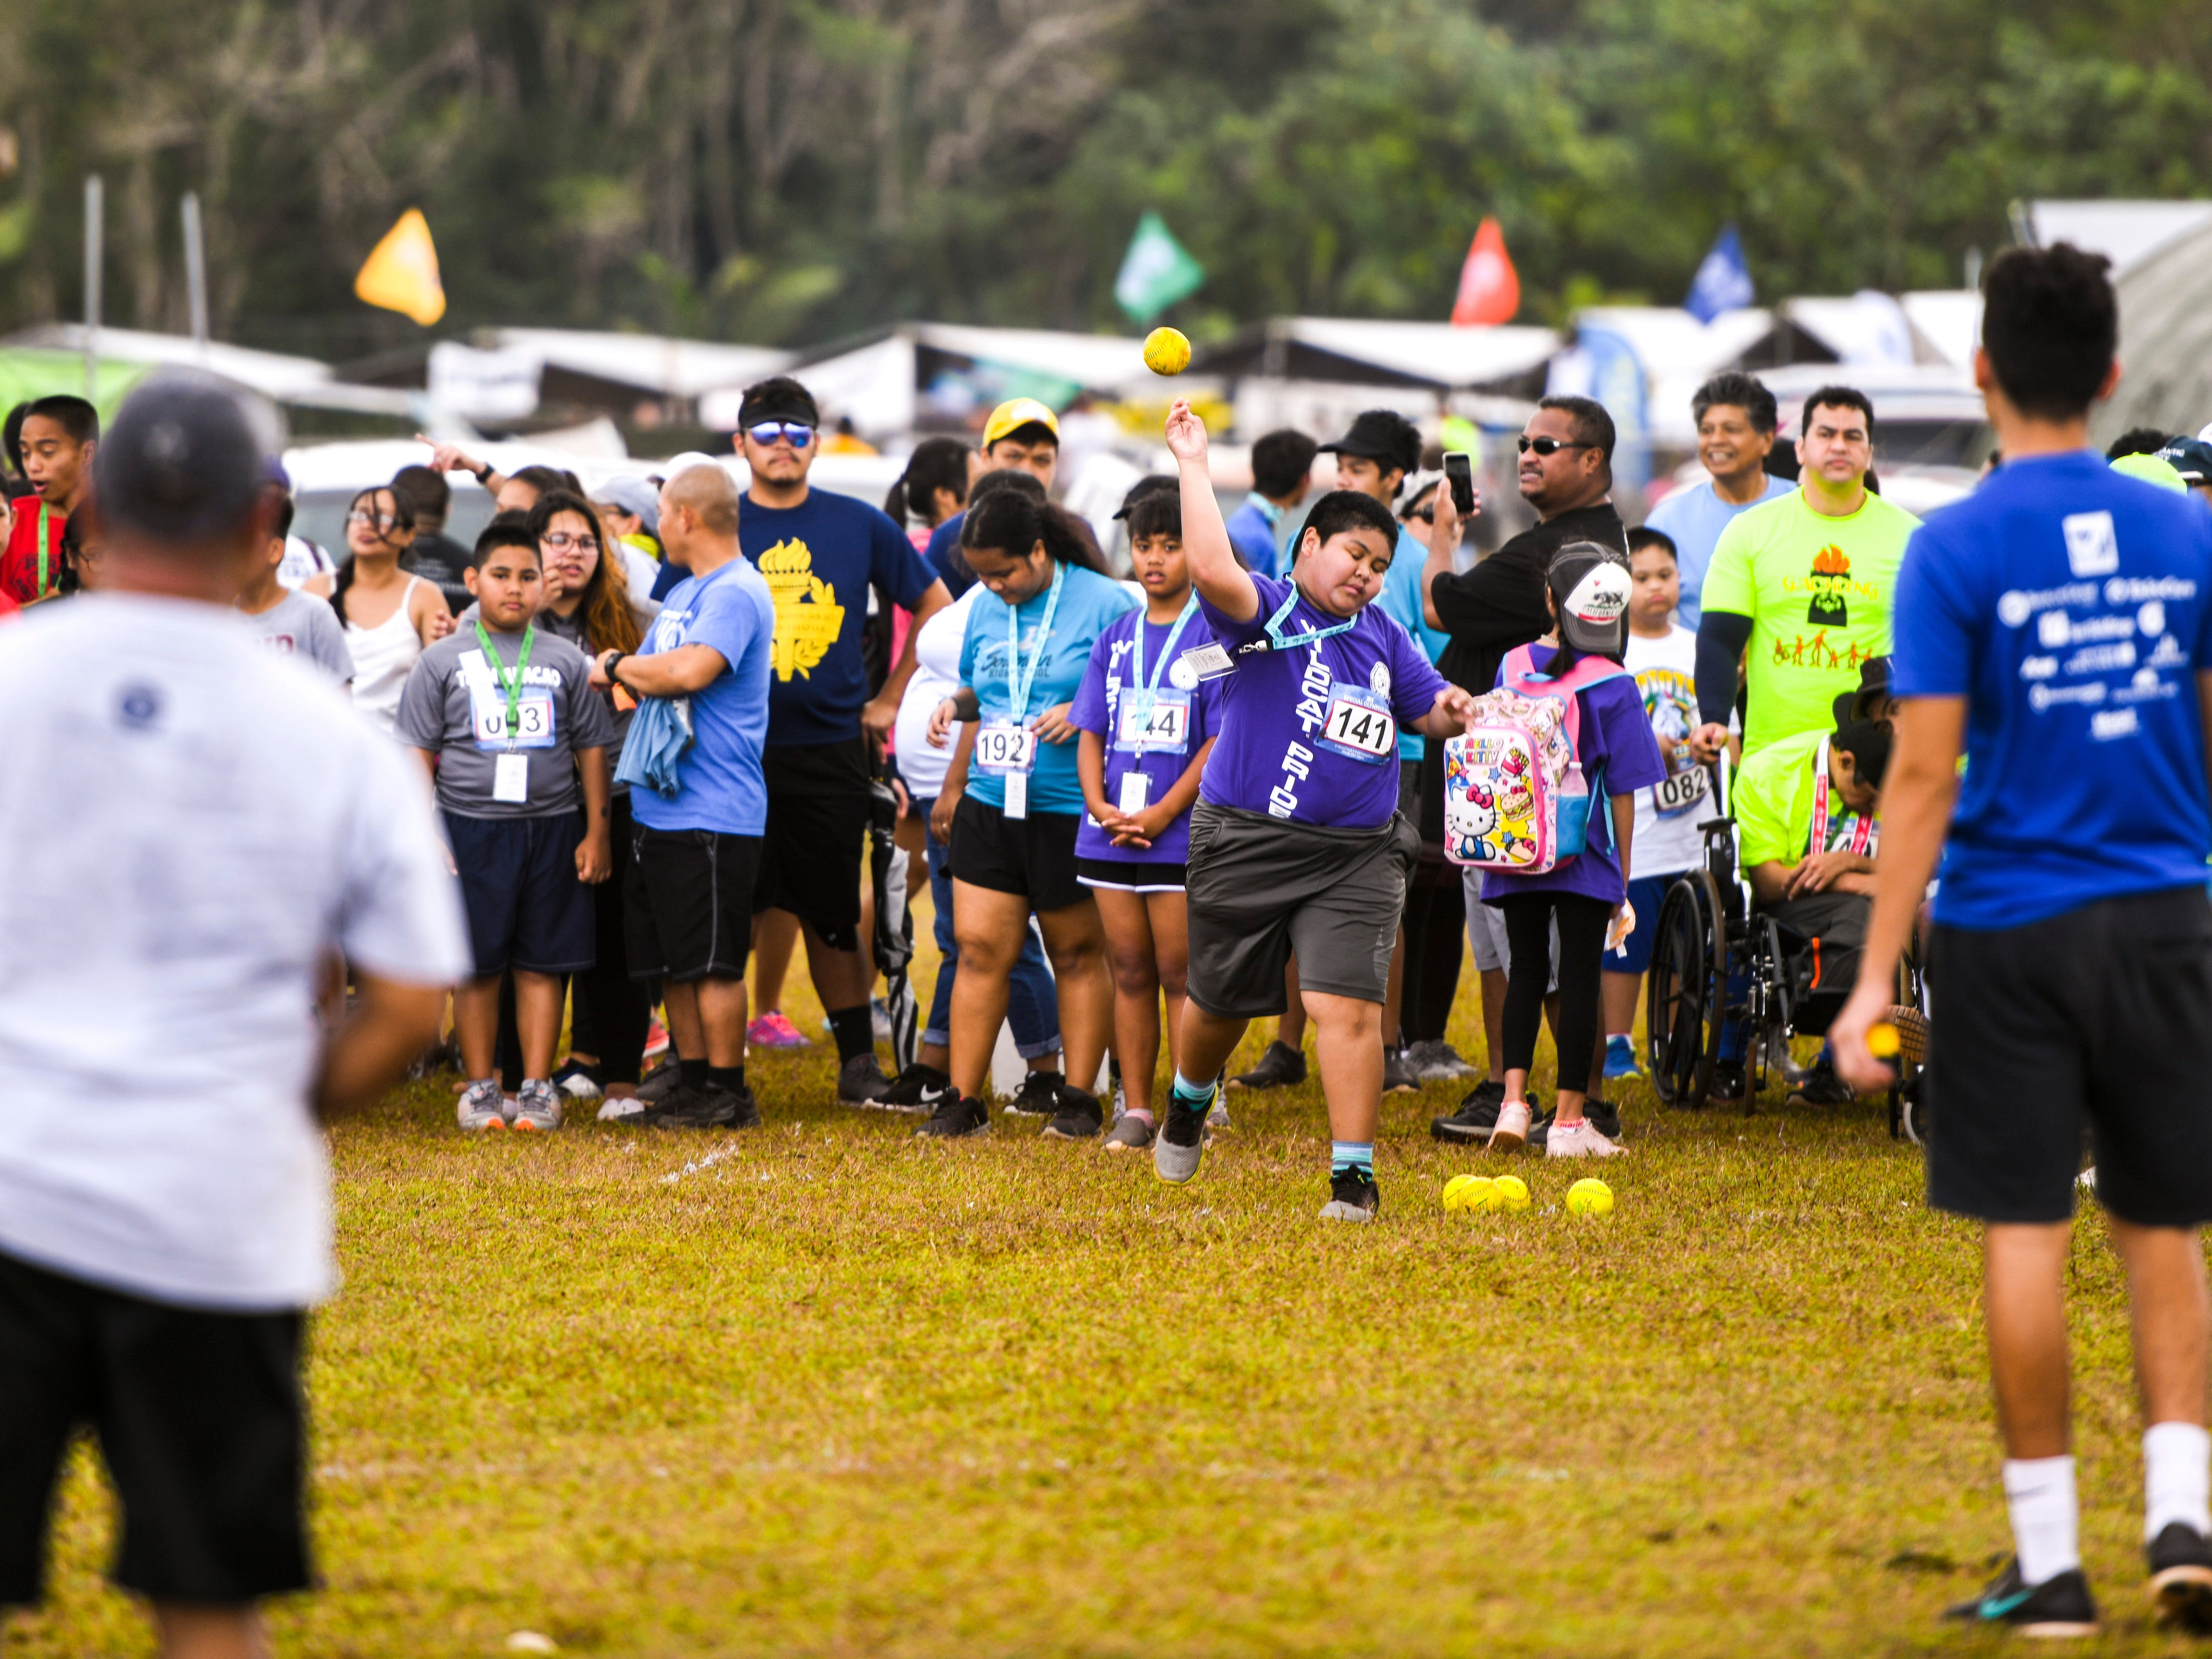 Special Olympians give their all as they compete in the 43rd Special Olympics Guam Track & Field competition at Okkodo High School in Dededo on Saturday, March 16, 2019.